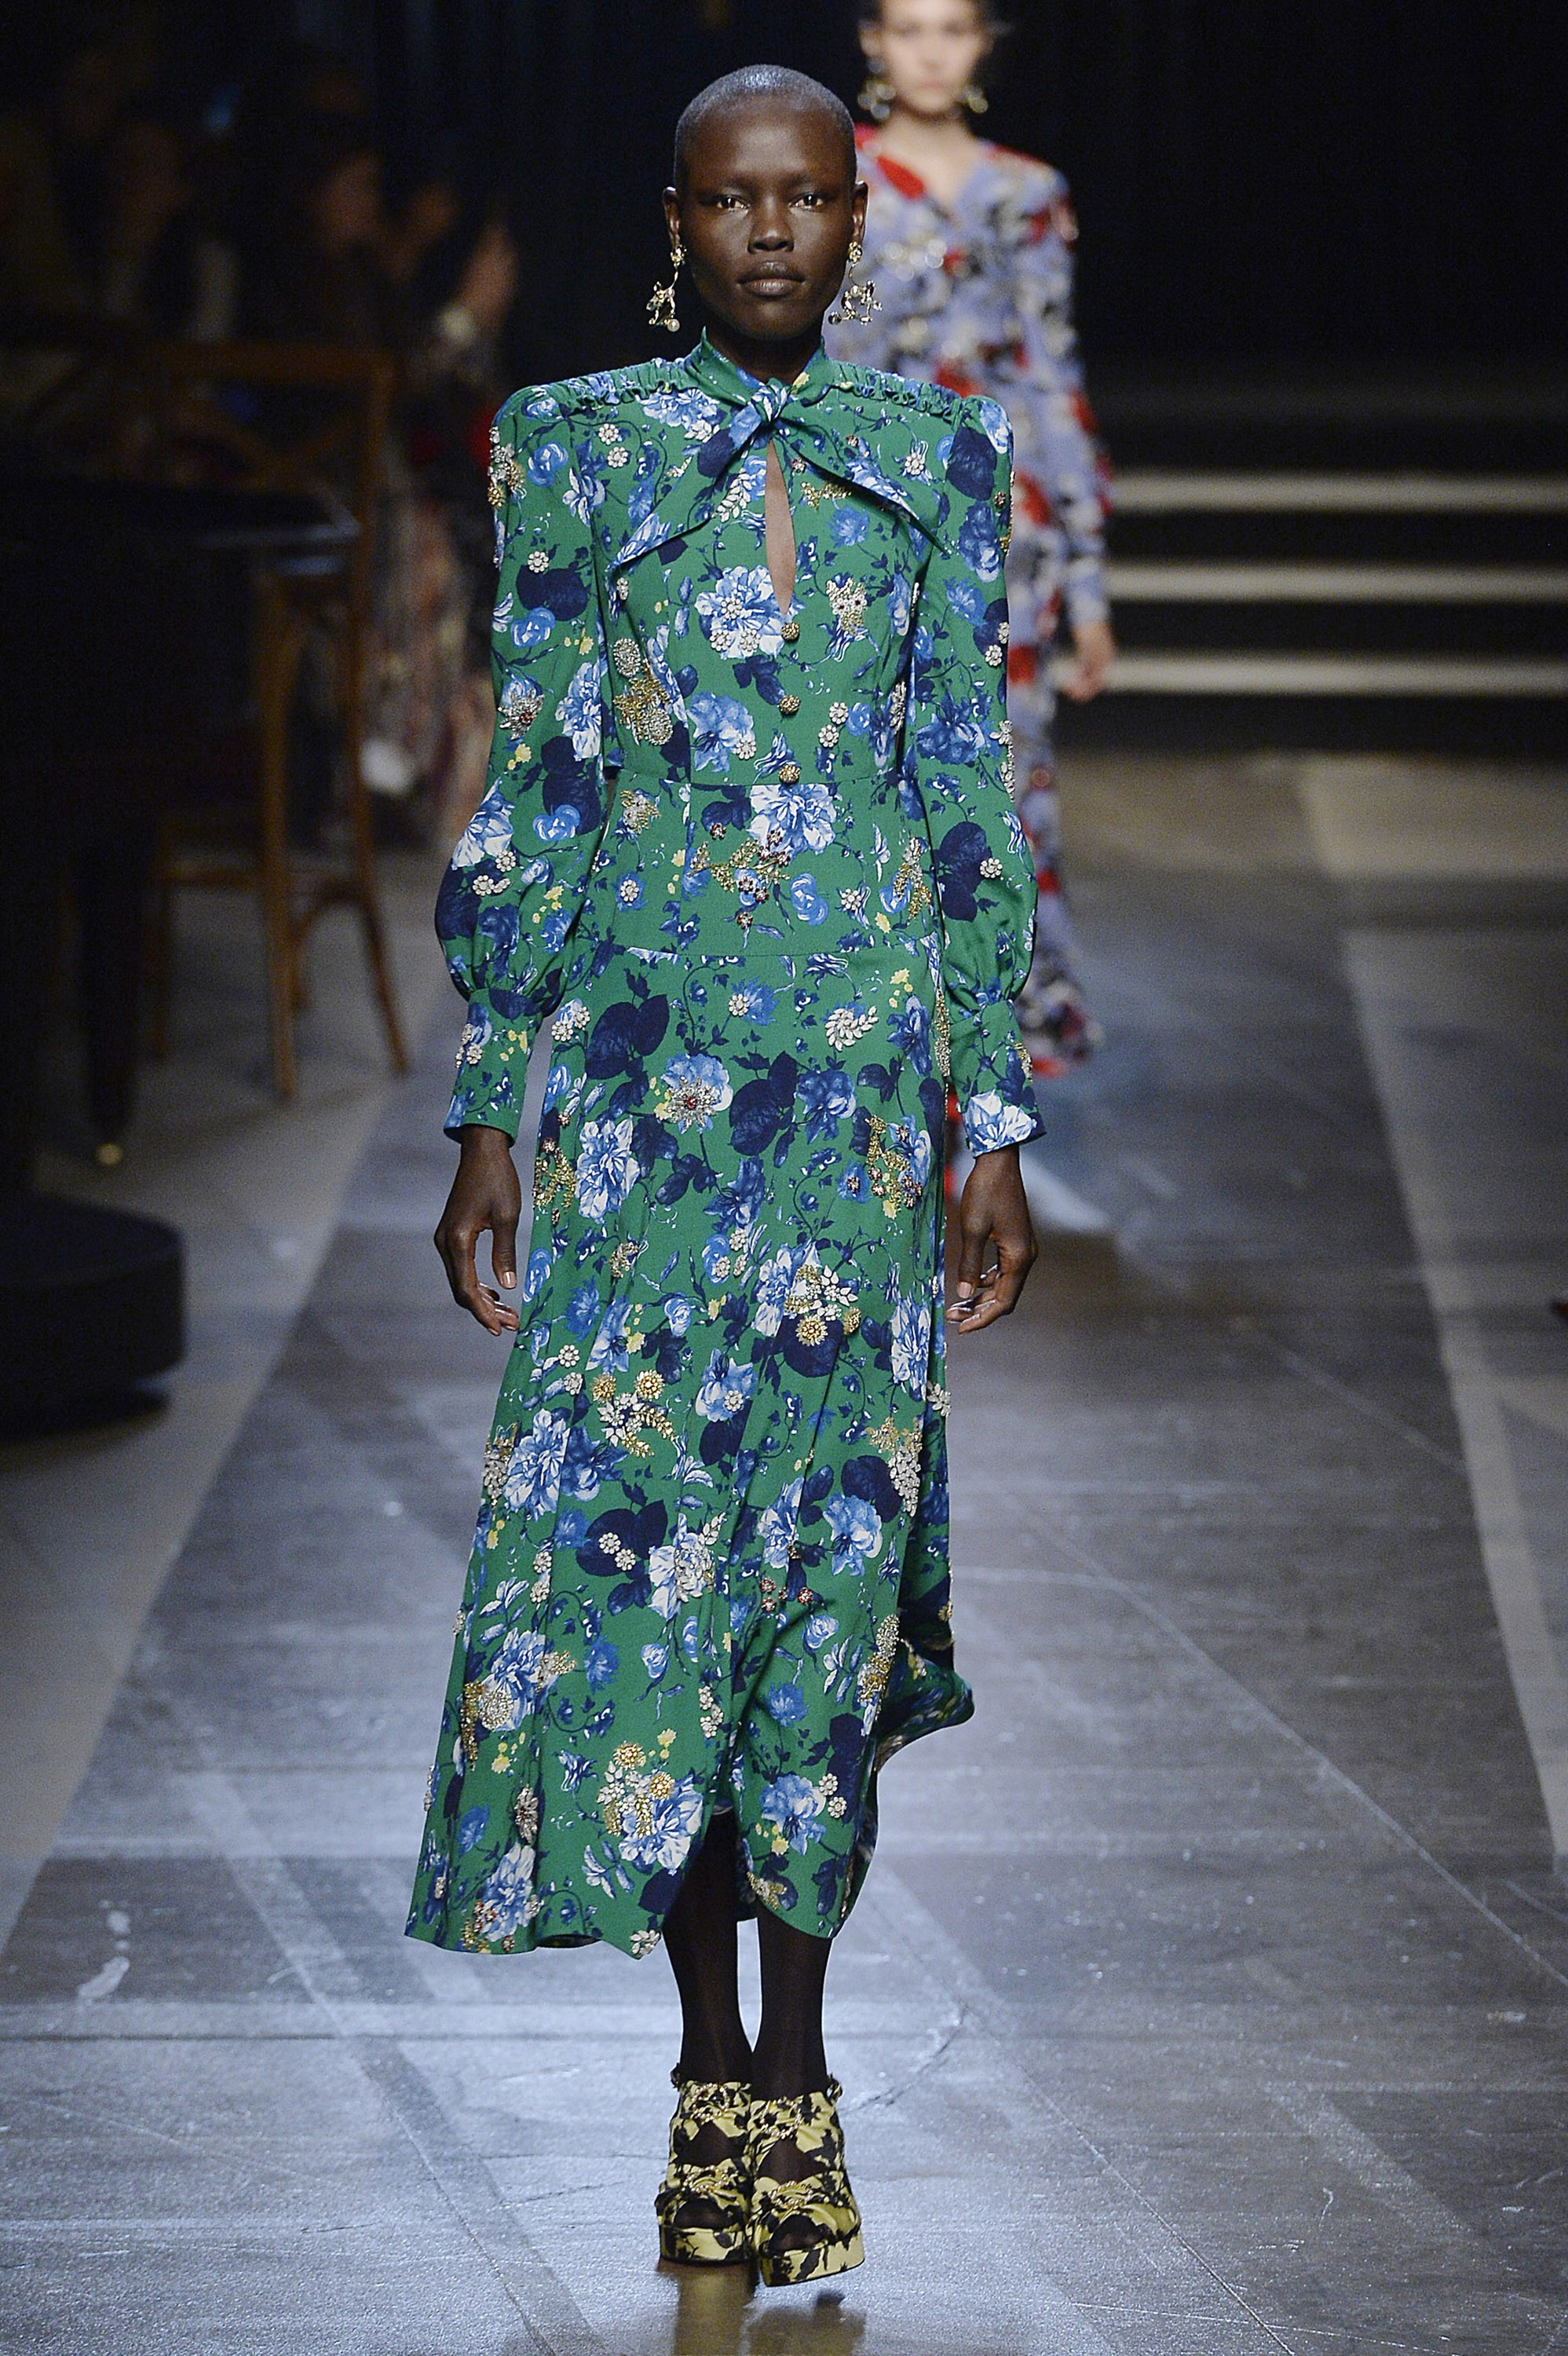 LONDON, ENGLAND - SEPTEMBER 18:  A model walks the runway at the Erdem Spring Summer 2018 fashion show during London Fashion Week on September 18, 2017 in London, United Kingdom.  (Photo by Catwalking/Getty Images) (Foto: Getty Images)